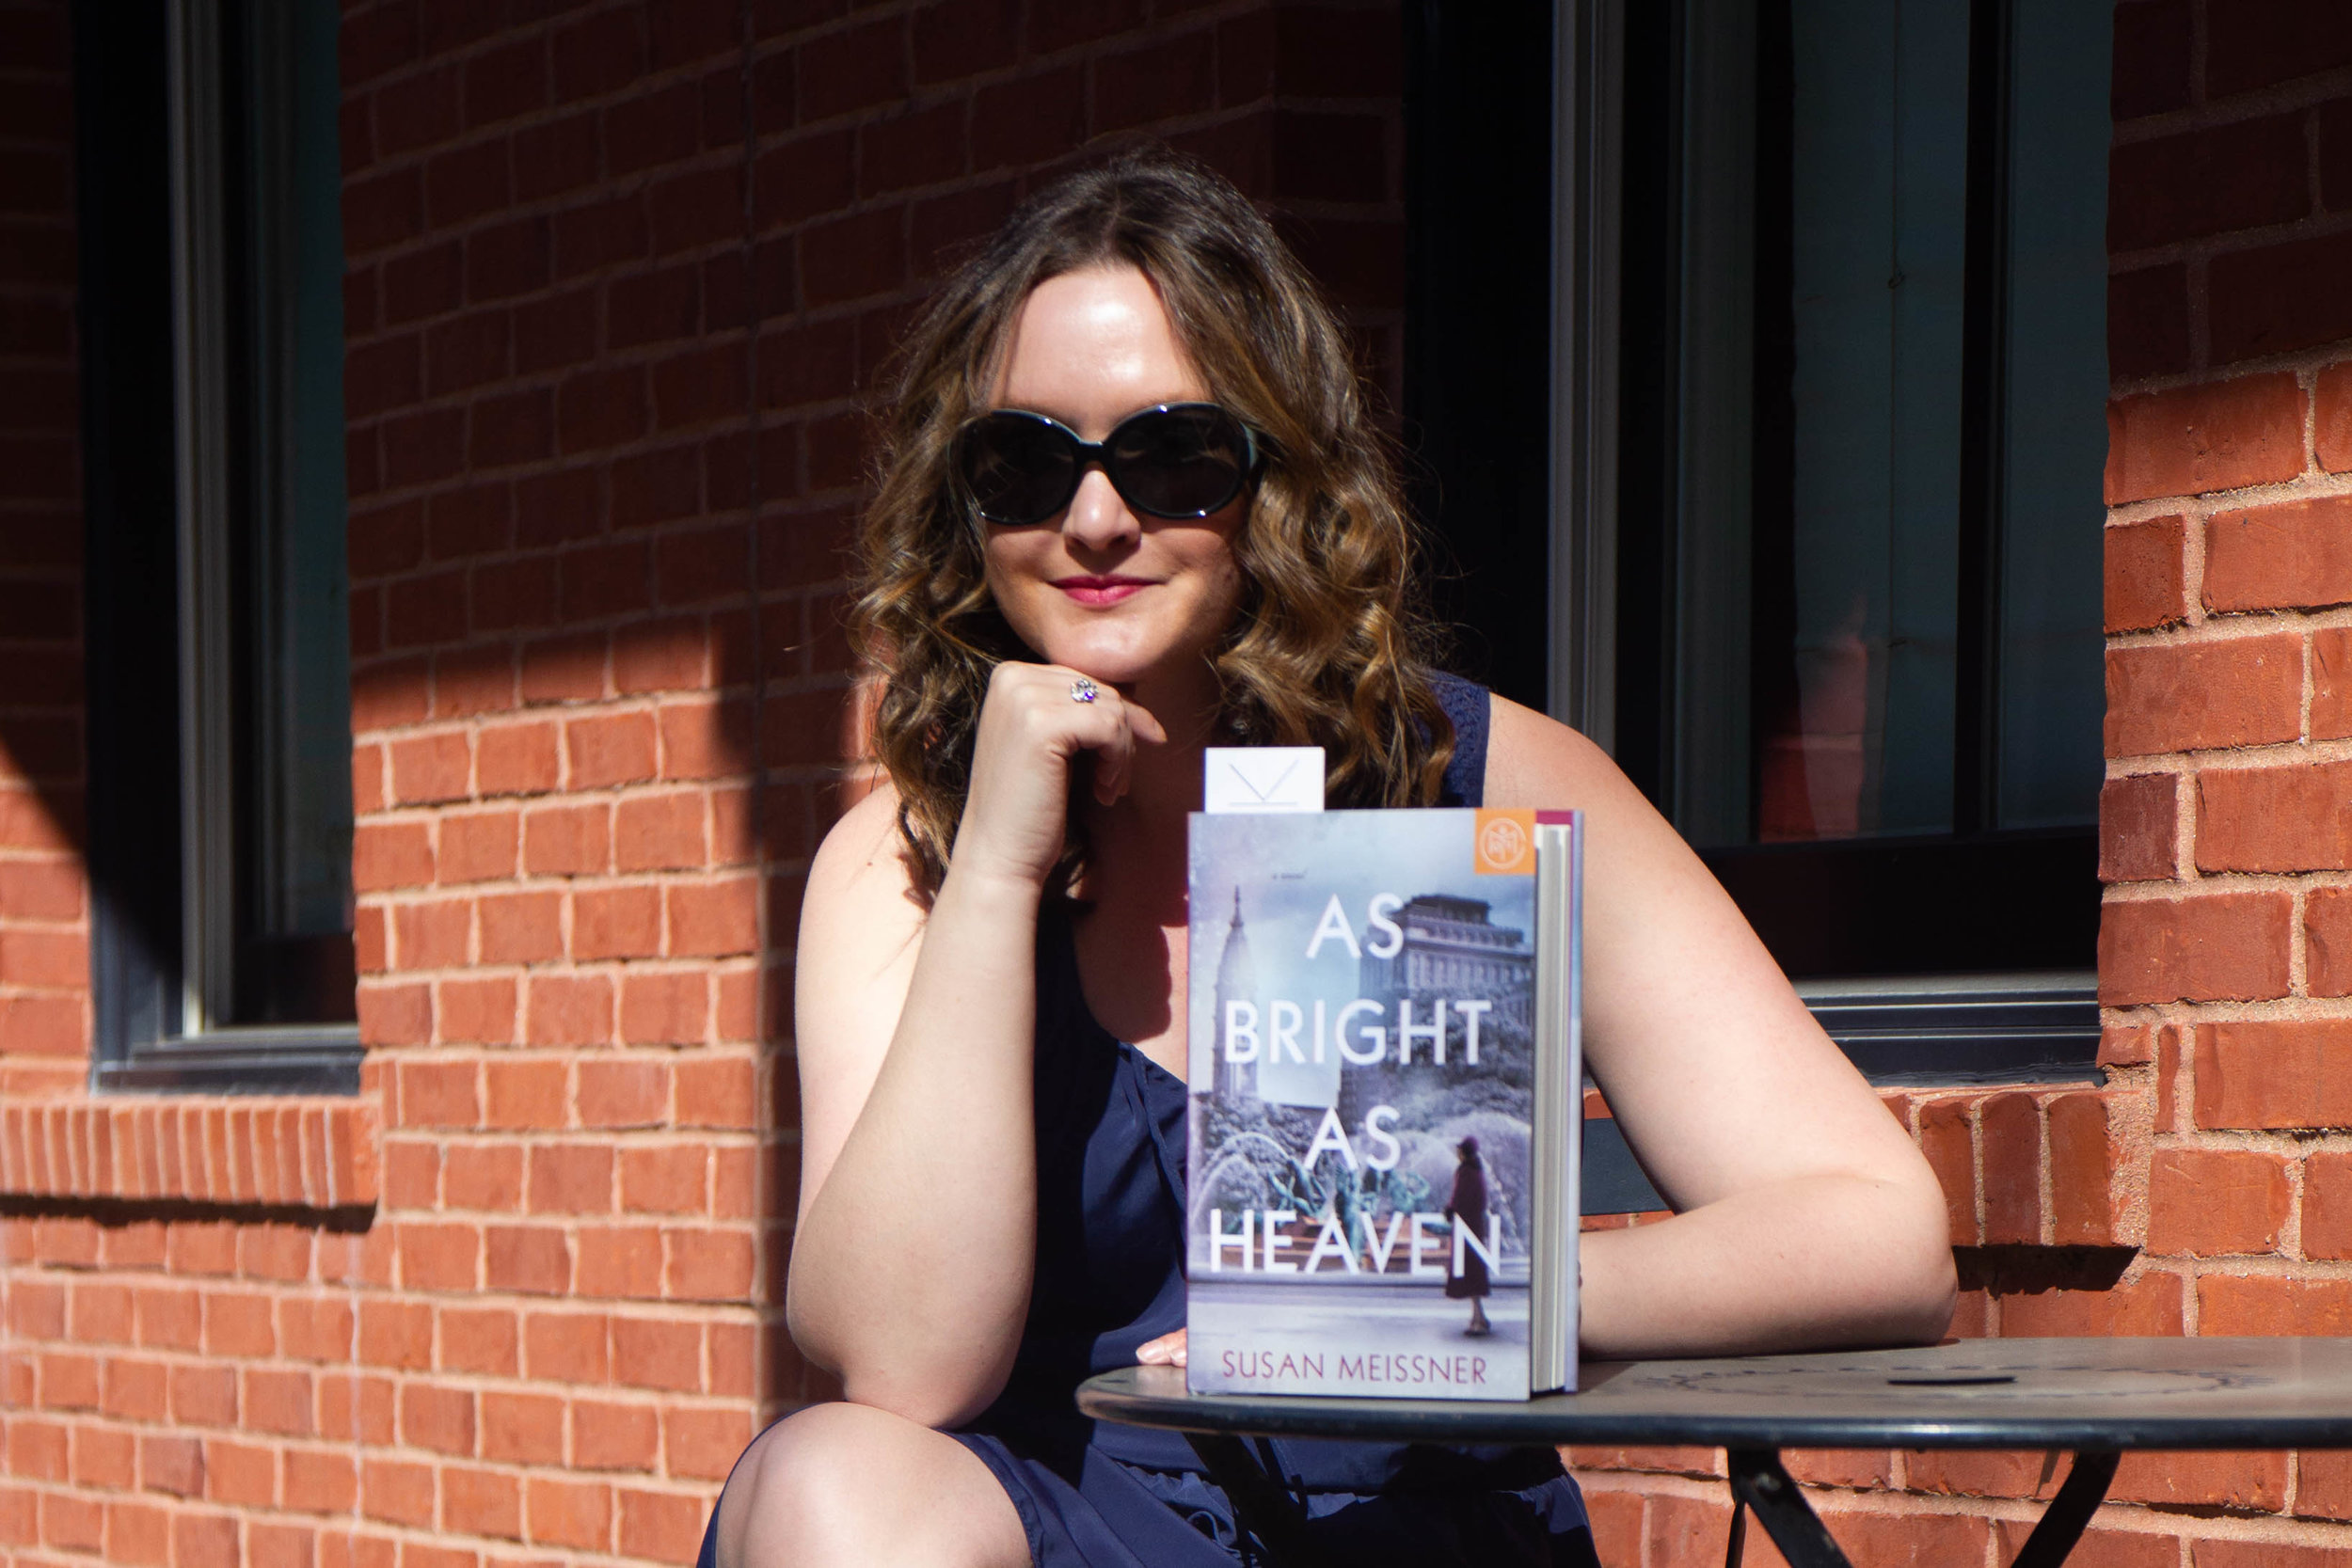 Reading As Bright As Heaven by Susan Meissner in New Town at St. Charles, MO (but it could be a cafe in France, no?)